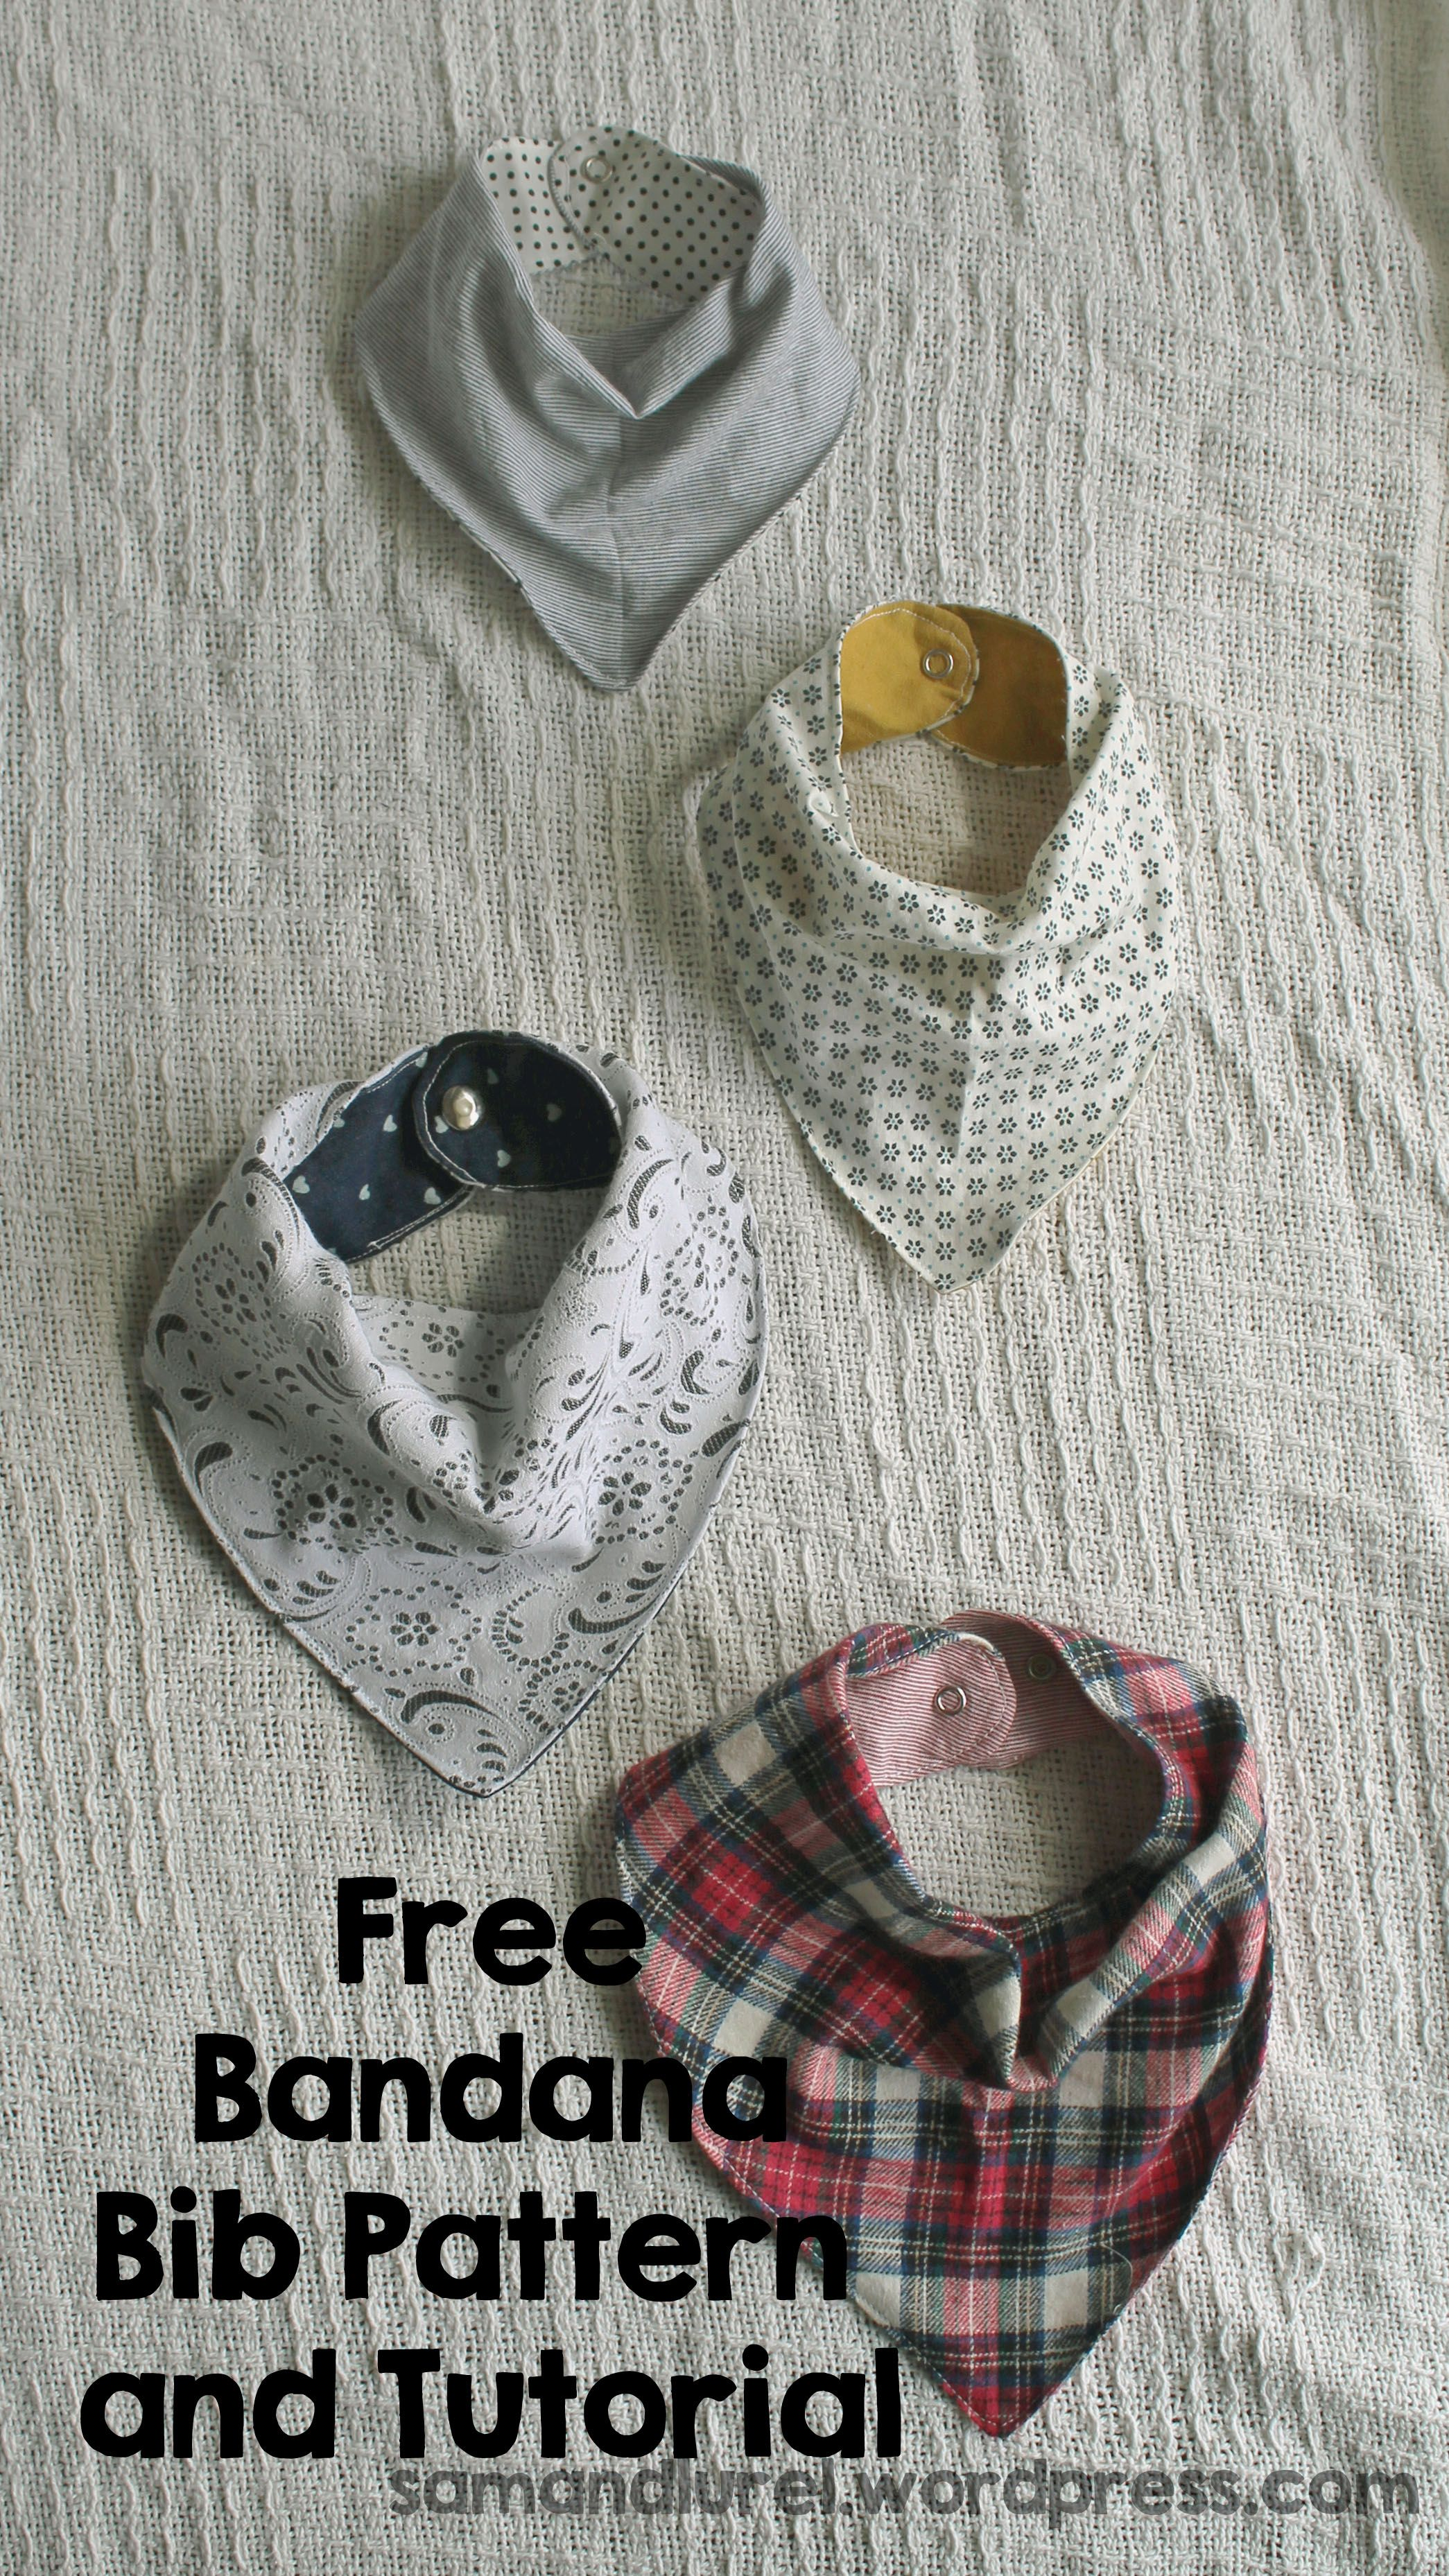 Free bandana bib pattern cowboys bandana bib and bandanas free bandana bib pattern i love this bandana bib tutorial easy cutiest one ive seen plus offers a tip to add ectra snaps so its adjustable as baby grows baditri Images